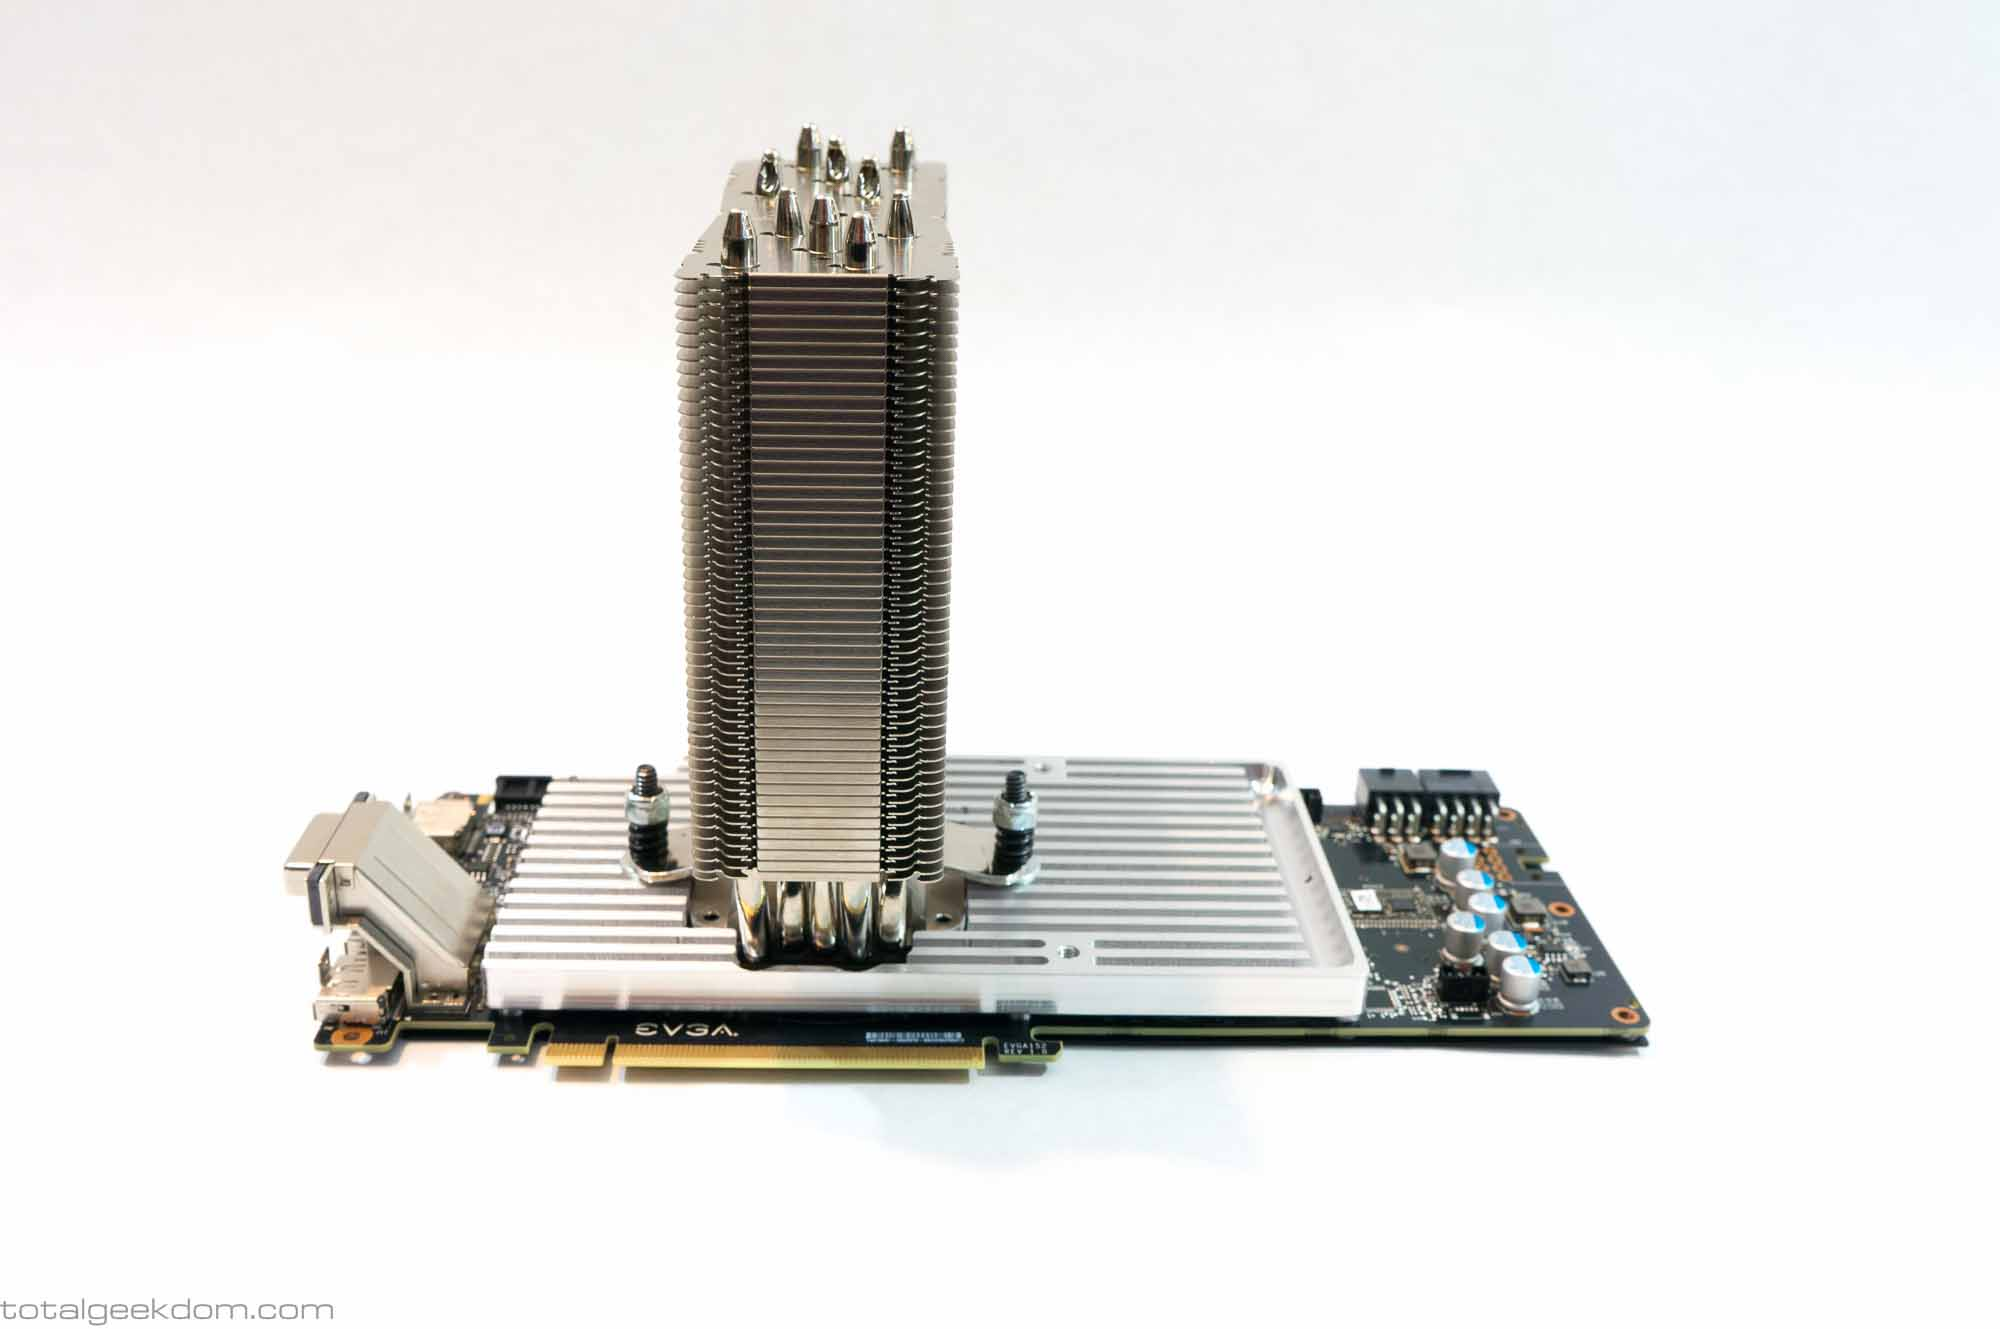 The wondrous custom-made GPU heatsink.